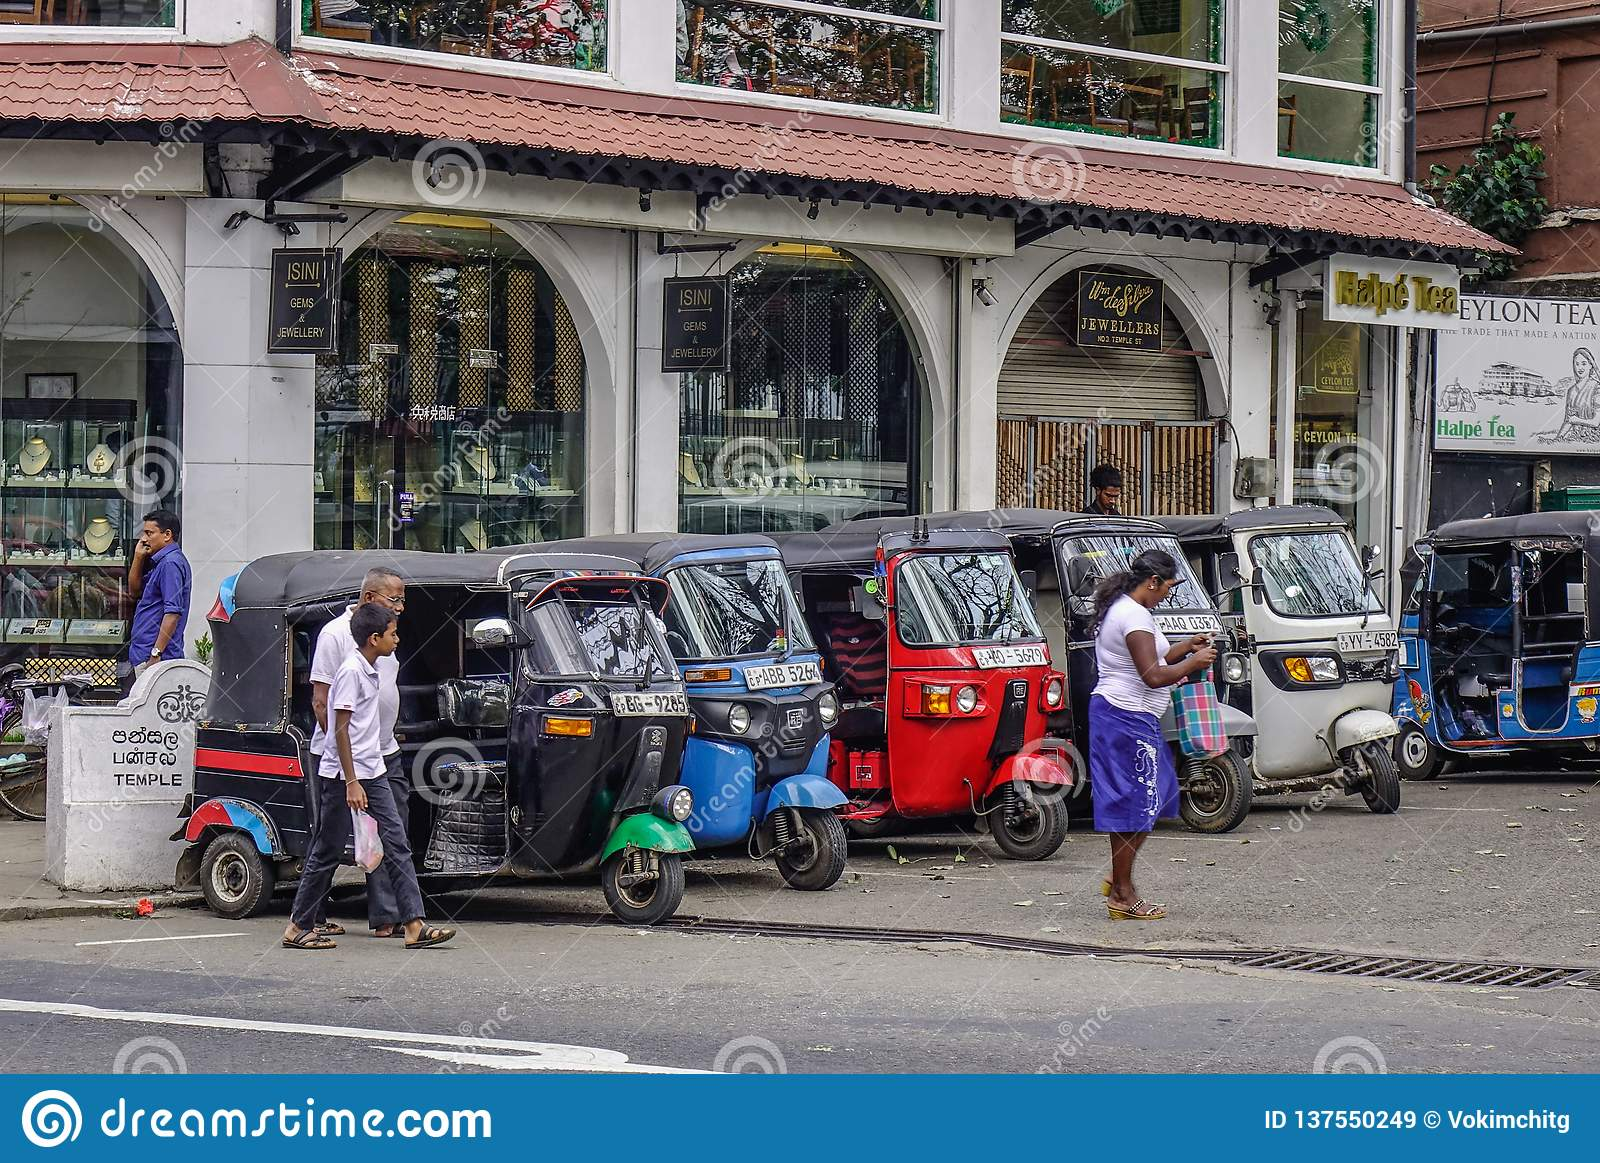 People and tuk tuk taxis on street